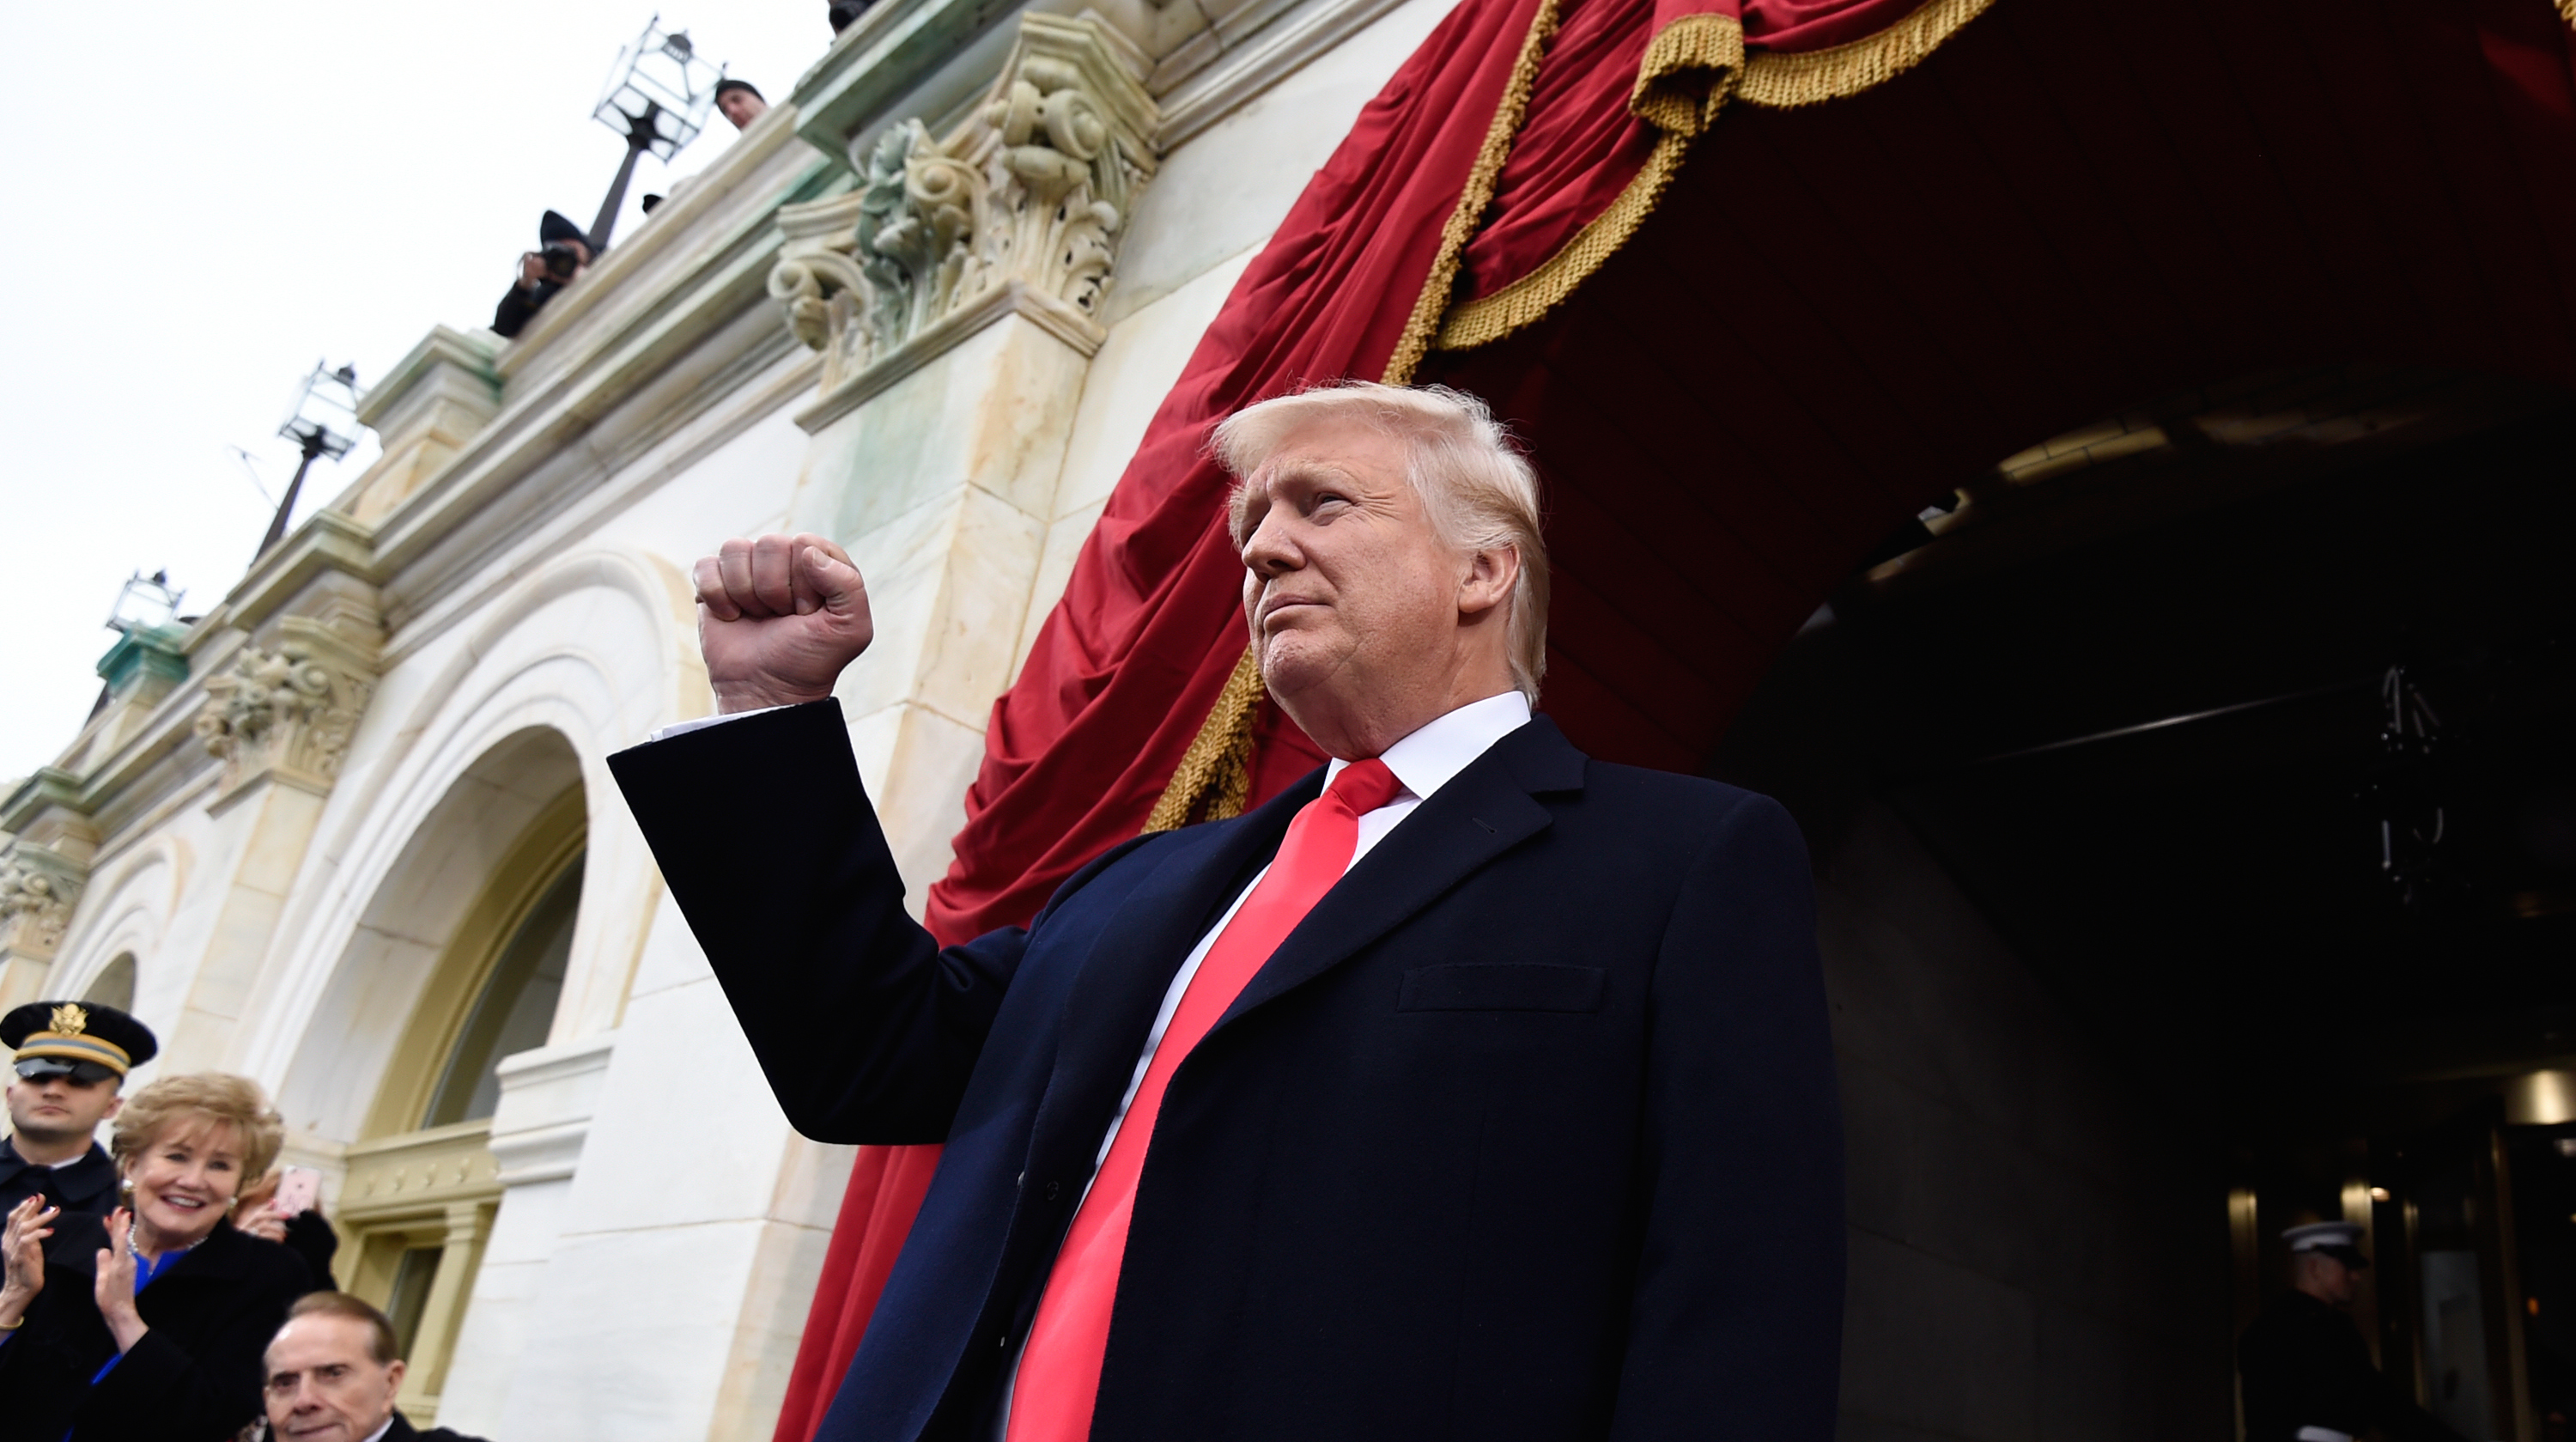 U.S. President-elect Donald Trump arrives for his Presidential Inauguration at the US Capitol in Washington, D.C., U.S. January 20, 2017